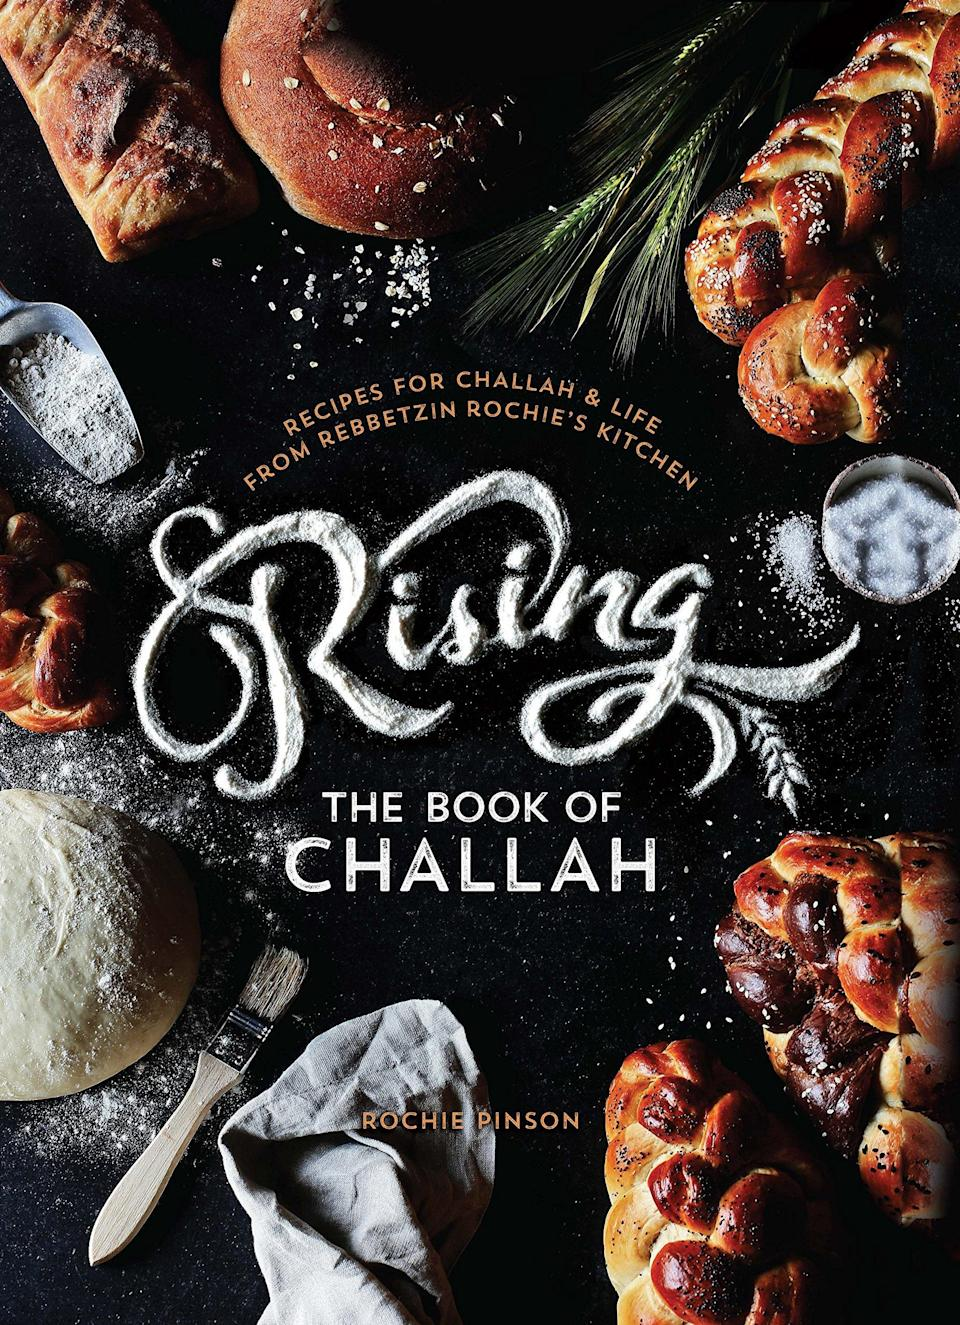 "Anyone that's ever had challah knows if done right, it's downright addicting (Basically the equivalent of an edible fluffy cloud, right?). But have you tried pretzel challah? Whole wheat challah? Gluten-free oat challah? Thanks to this beautiful book from Rebbetzin Rochie Pinson, you can. She shares her experiences from decades spent perfecting the art of challah <a href=""https://www.glamour.com/about/baking?mbid=synd_yahoo_rss"" rel=""nofollow noopener"" target=""_blank"" data-ylk=""slk:baking"" class=""link rapid-noclick-resp"">baking</a> and teaching workshops around the world. $36, Amazon. <a href=""https://www.amazon.com/RISING-Book-Challah-Rochie-Pinson/dp/0991472047"" rel=""nofollow noopener"" target=""_blank"" data-ylk=""slk:Get it now!"" class=""link rapid-noclick-resp"">Get it now!</a>"